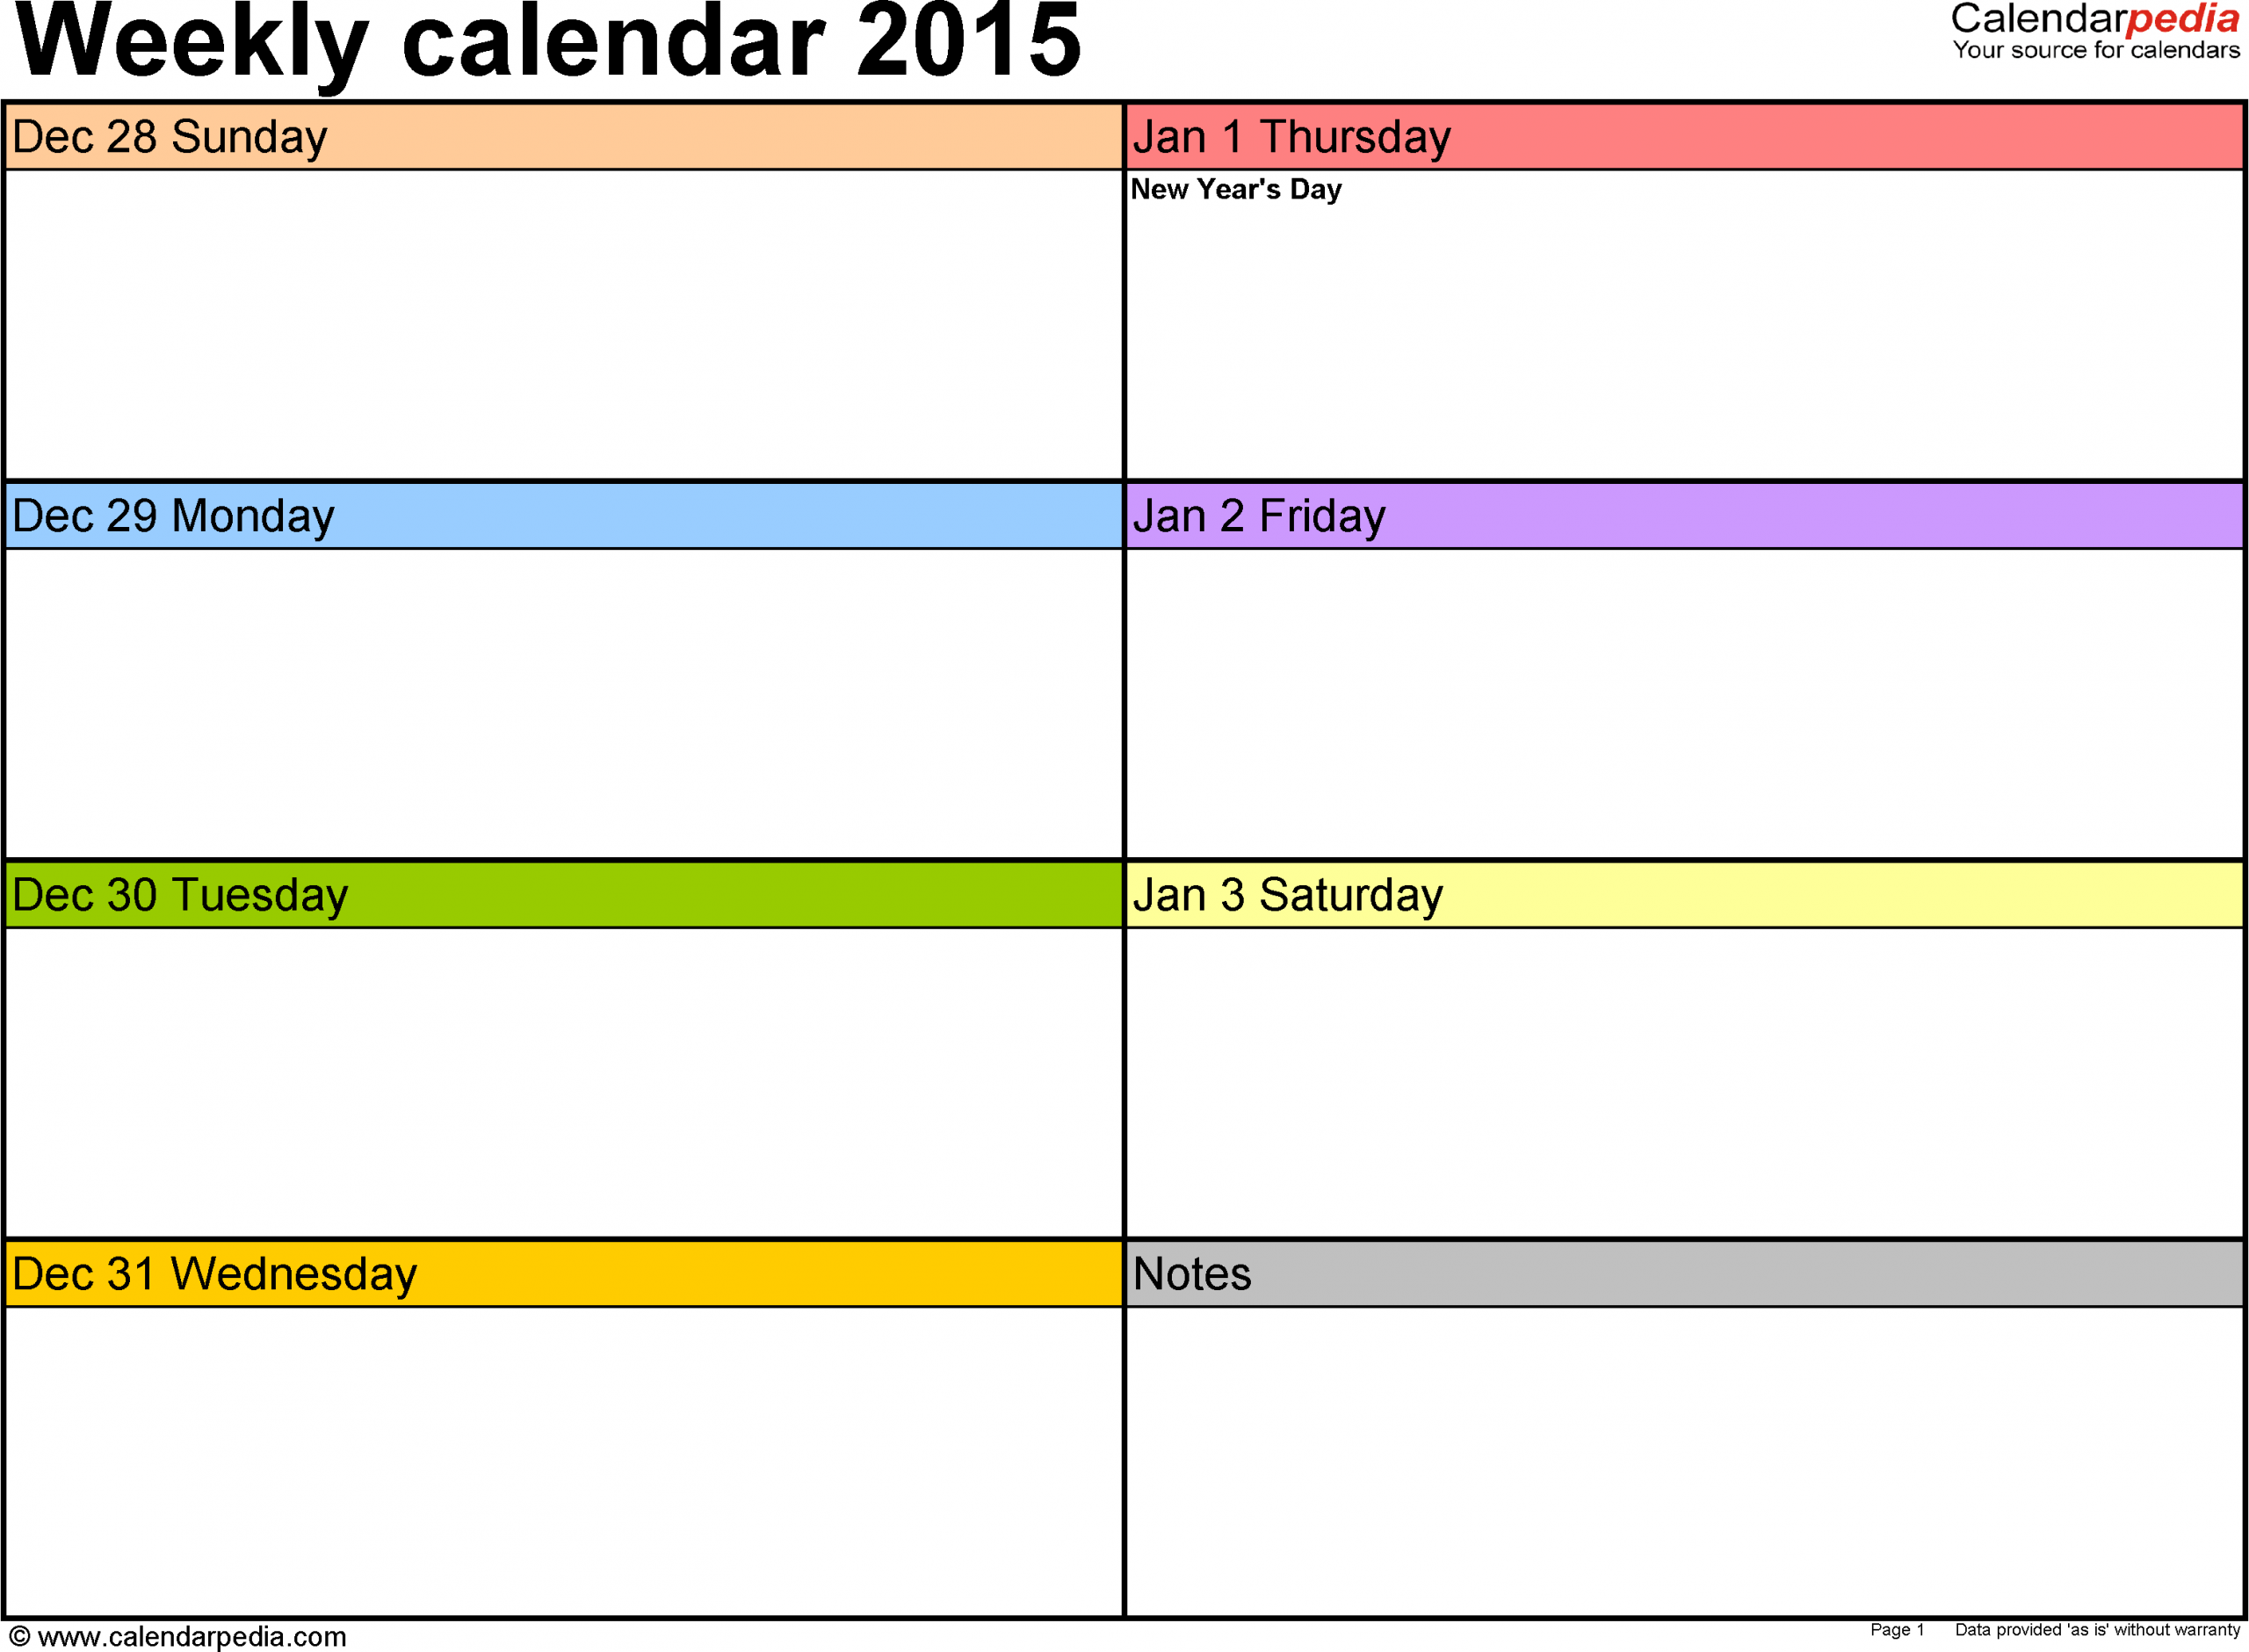 Weekly Calendars 2015 For Word 12 Free Printable Templates 1